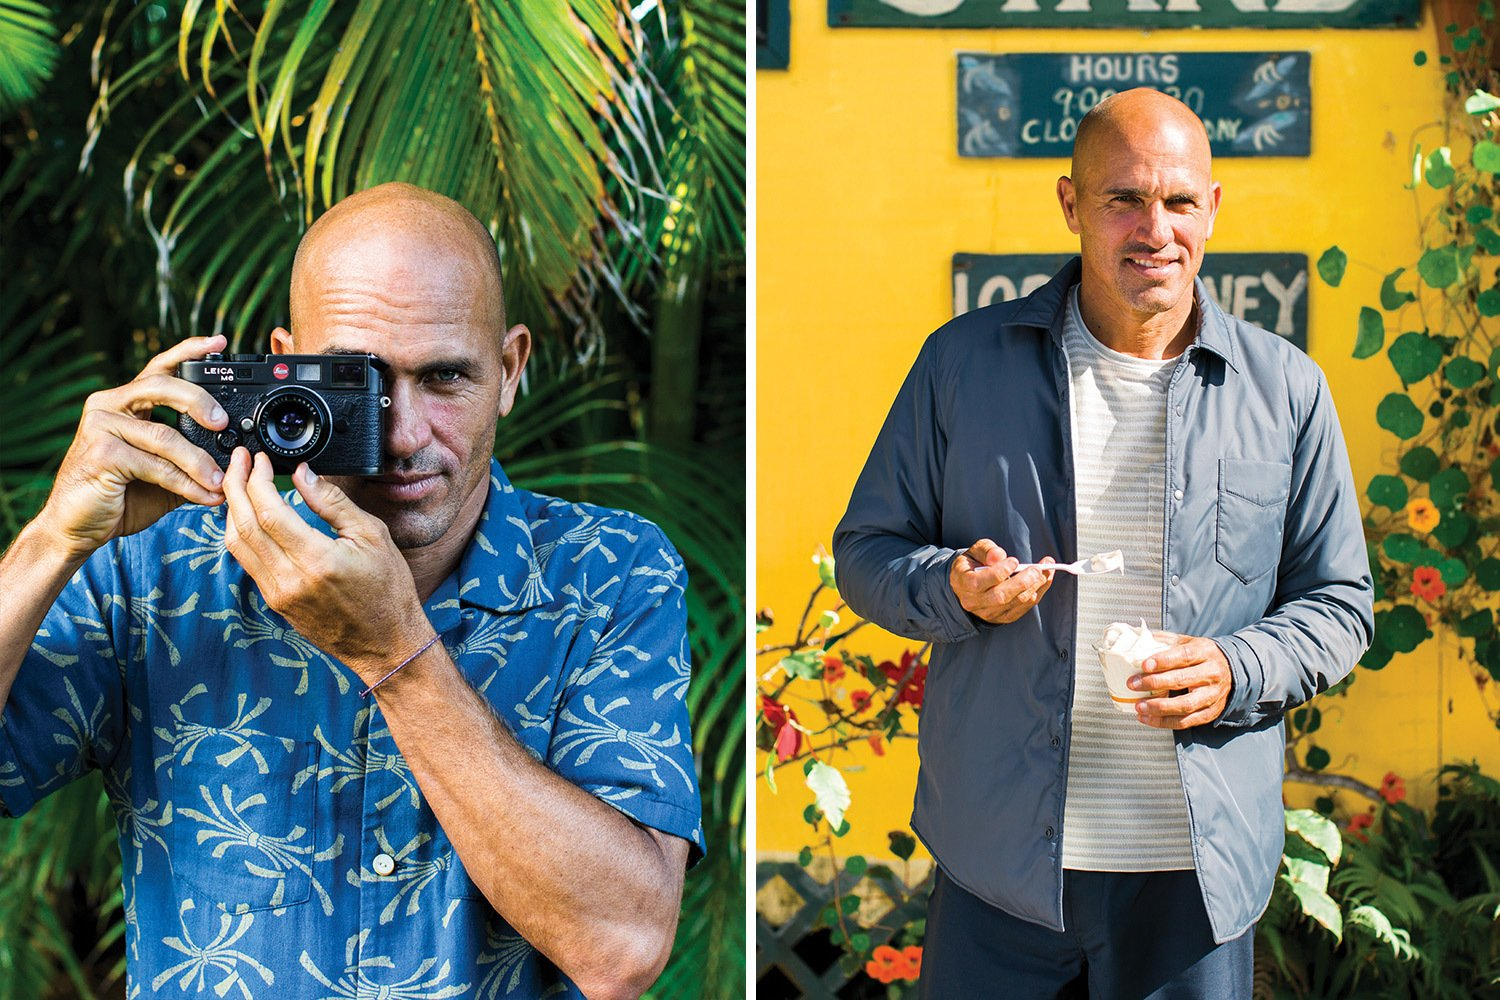 Photo 3 of 5 in Road-tripping Kauai with Pro Surfer Kelly Slater